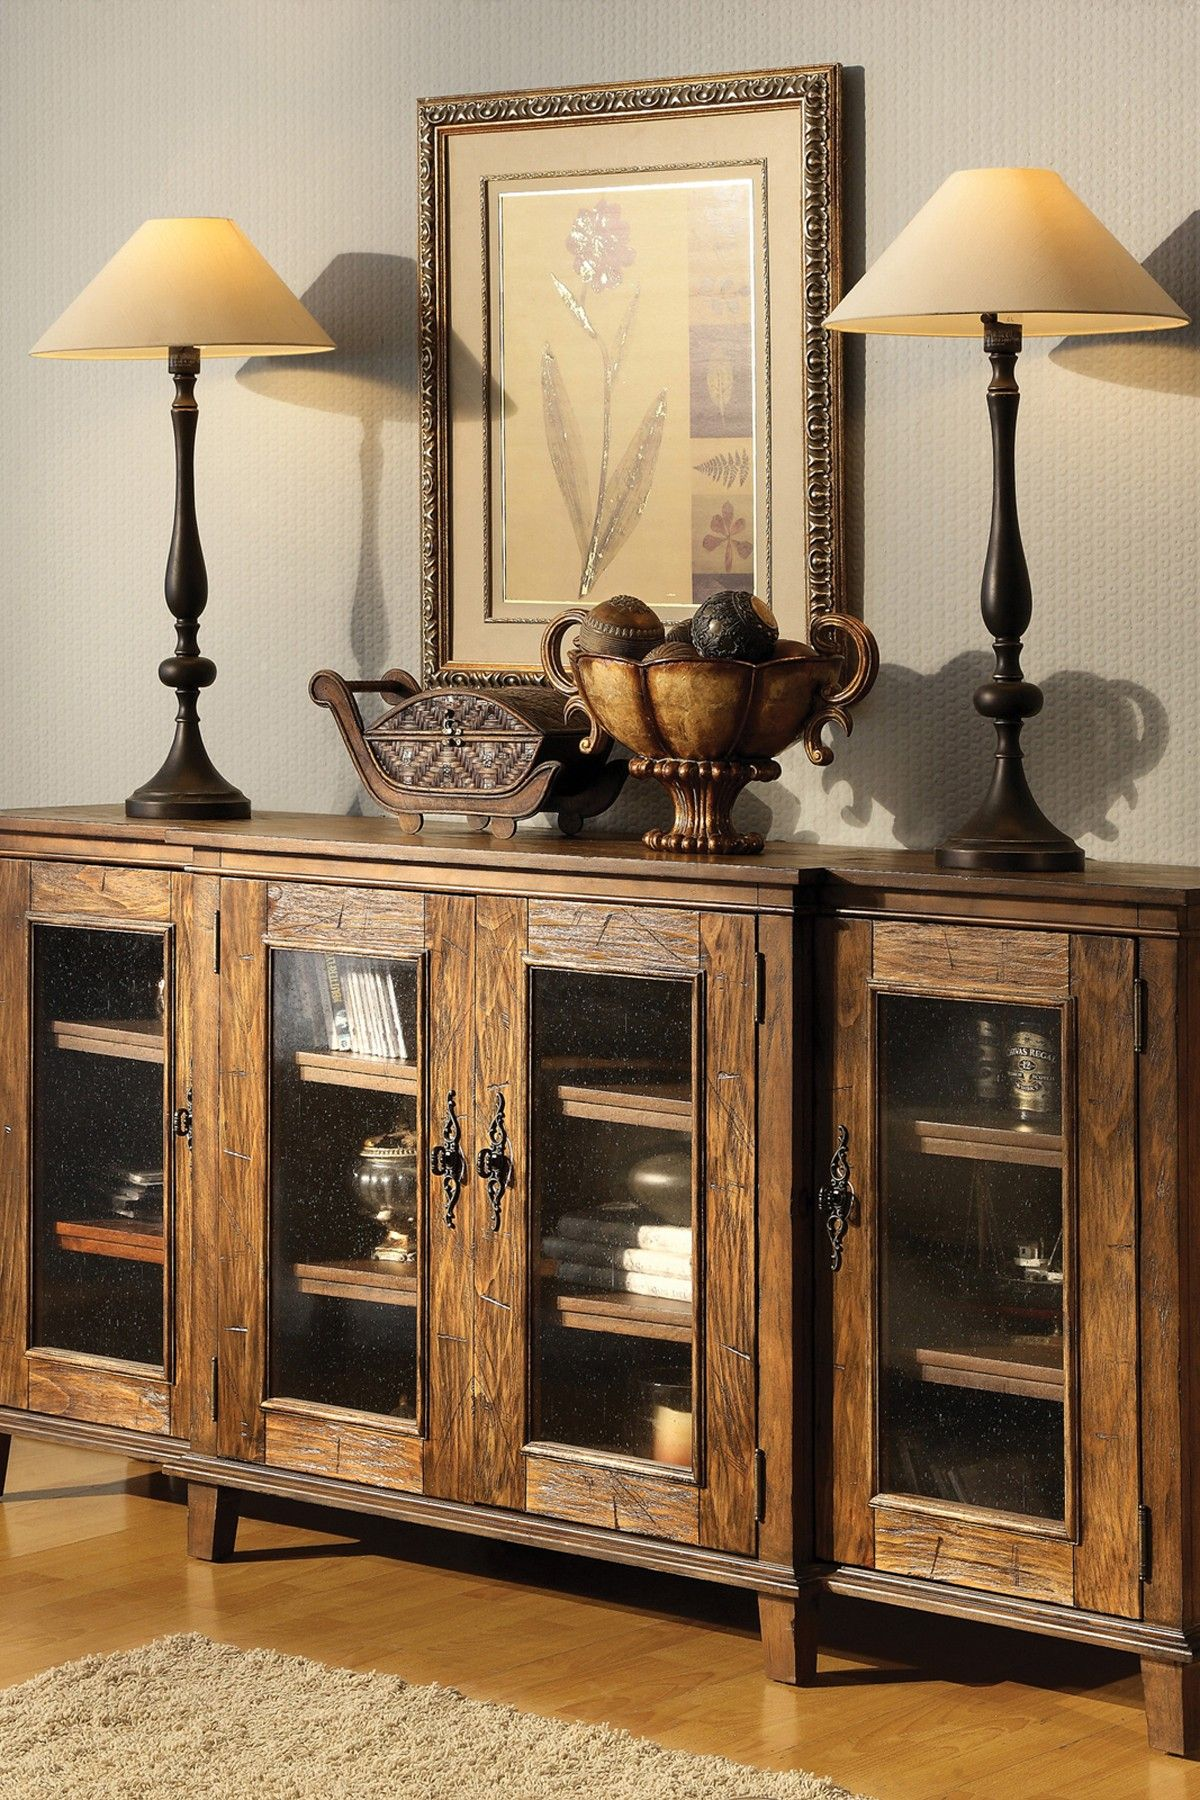 French Cottage Rustic Media Cabinet/Sideboard  Want!